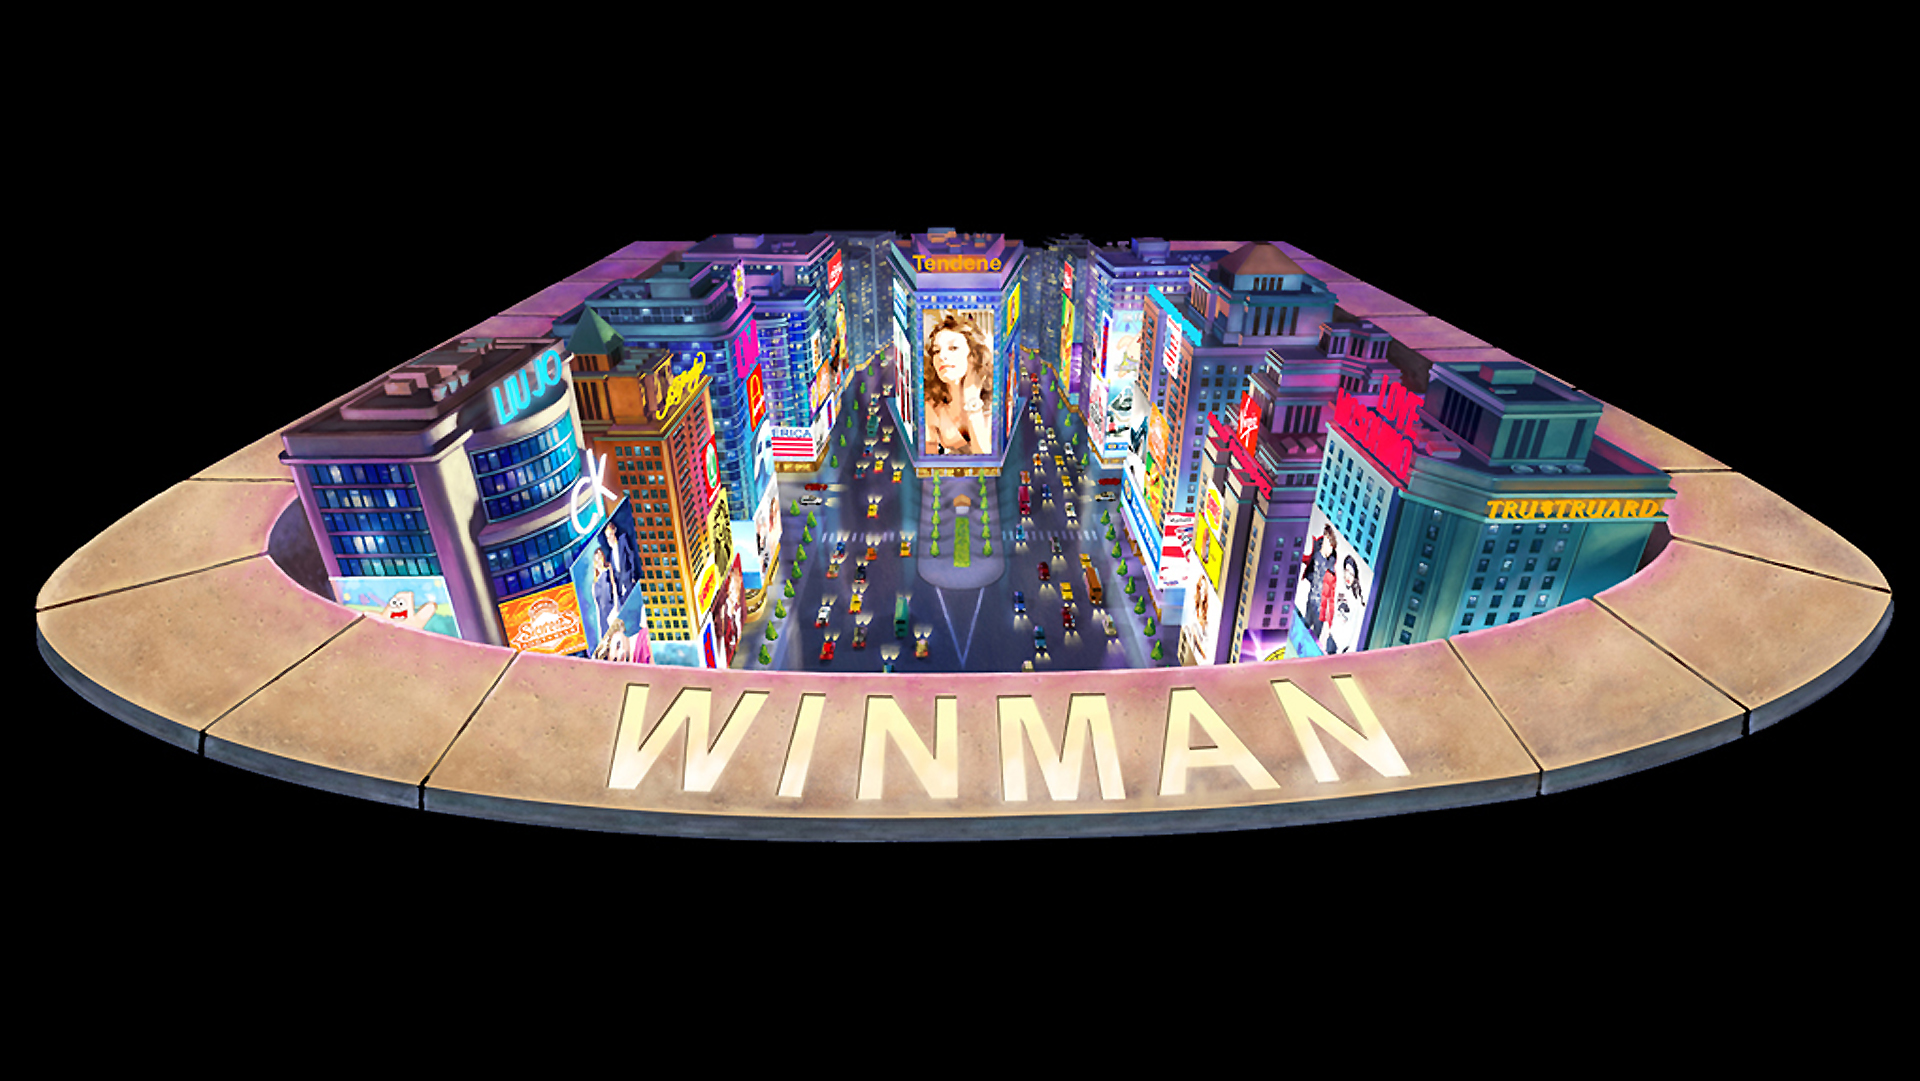 Trick art for WINMAN mall Macau